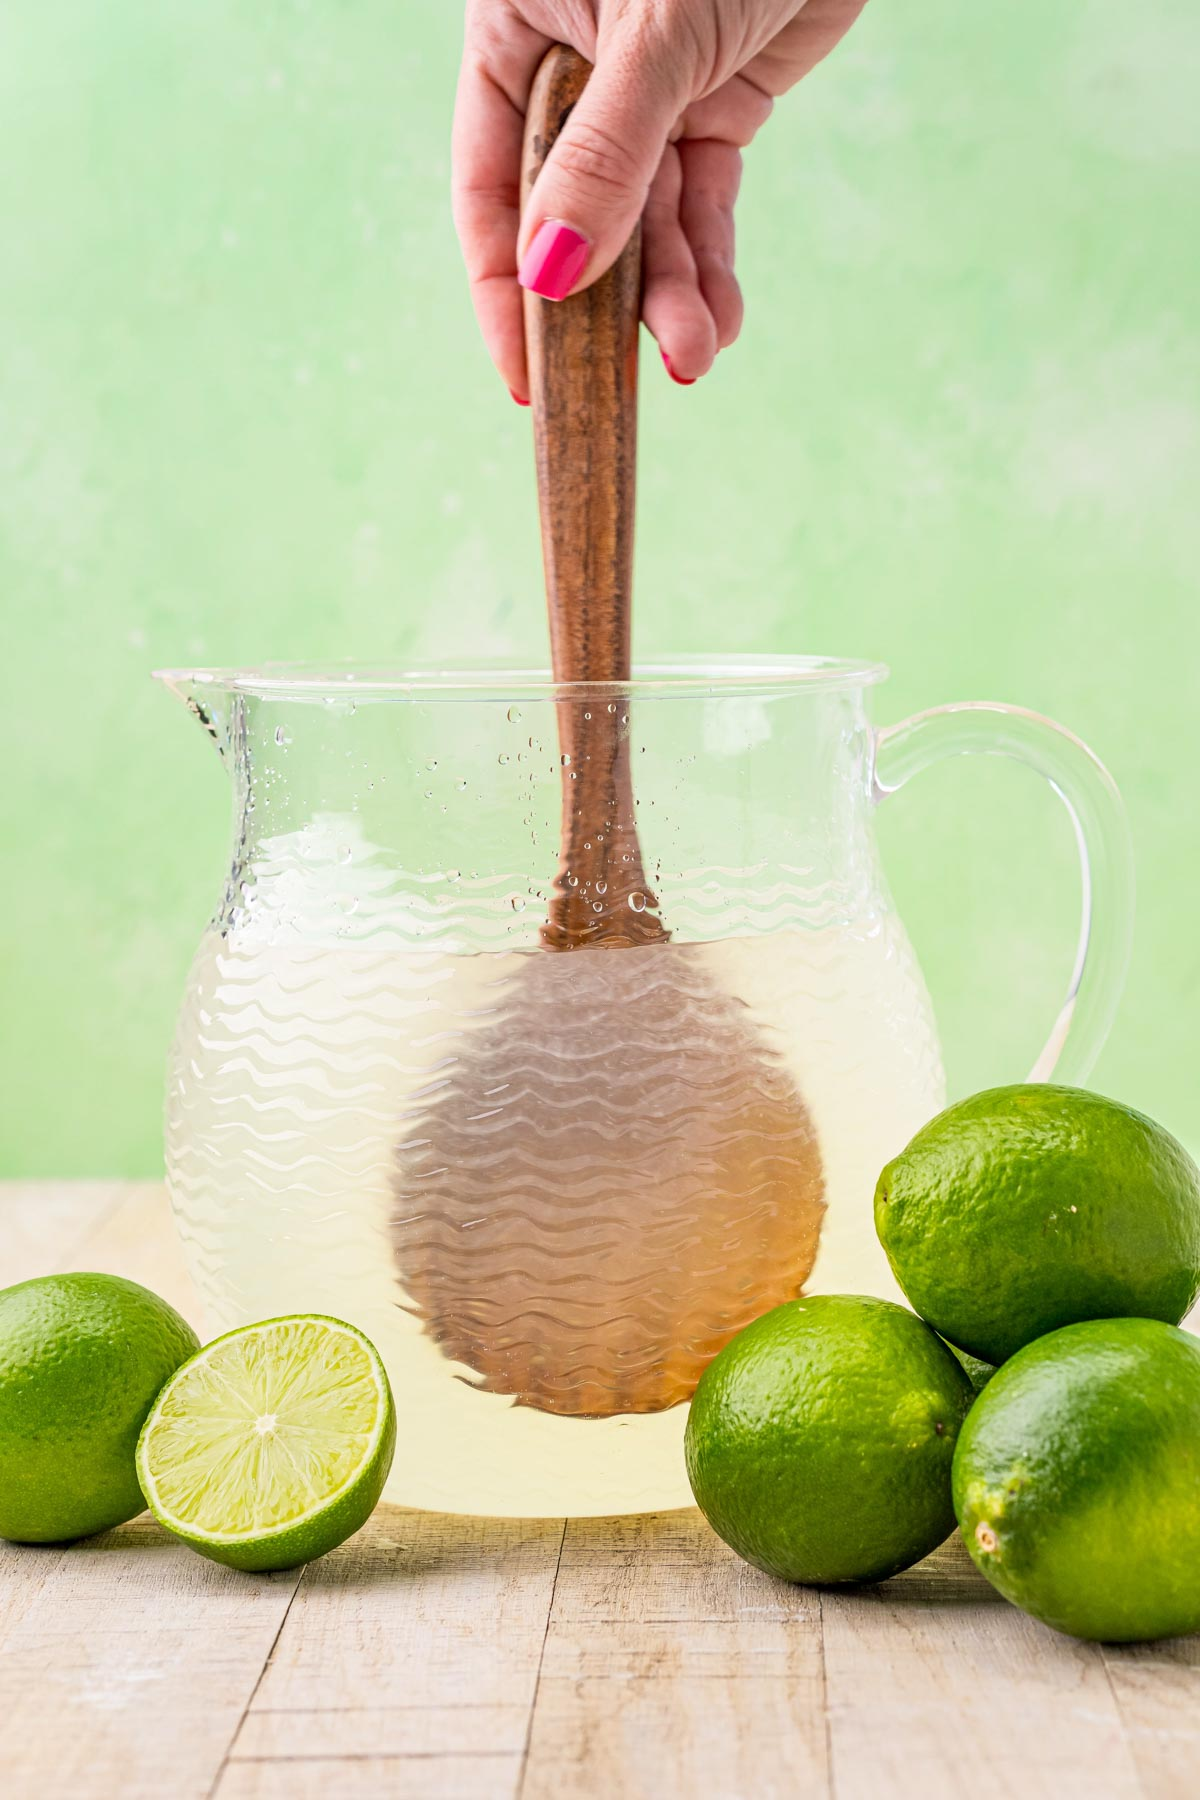 stirring a glass pitcher of limeade